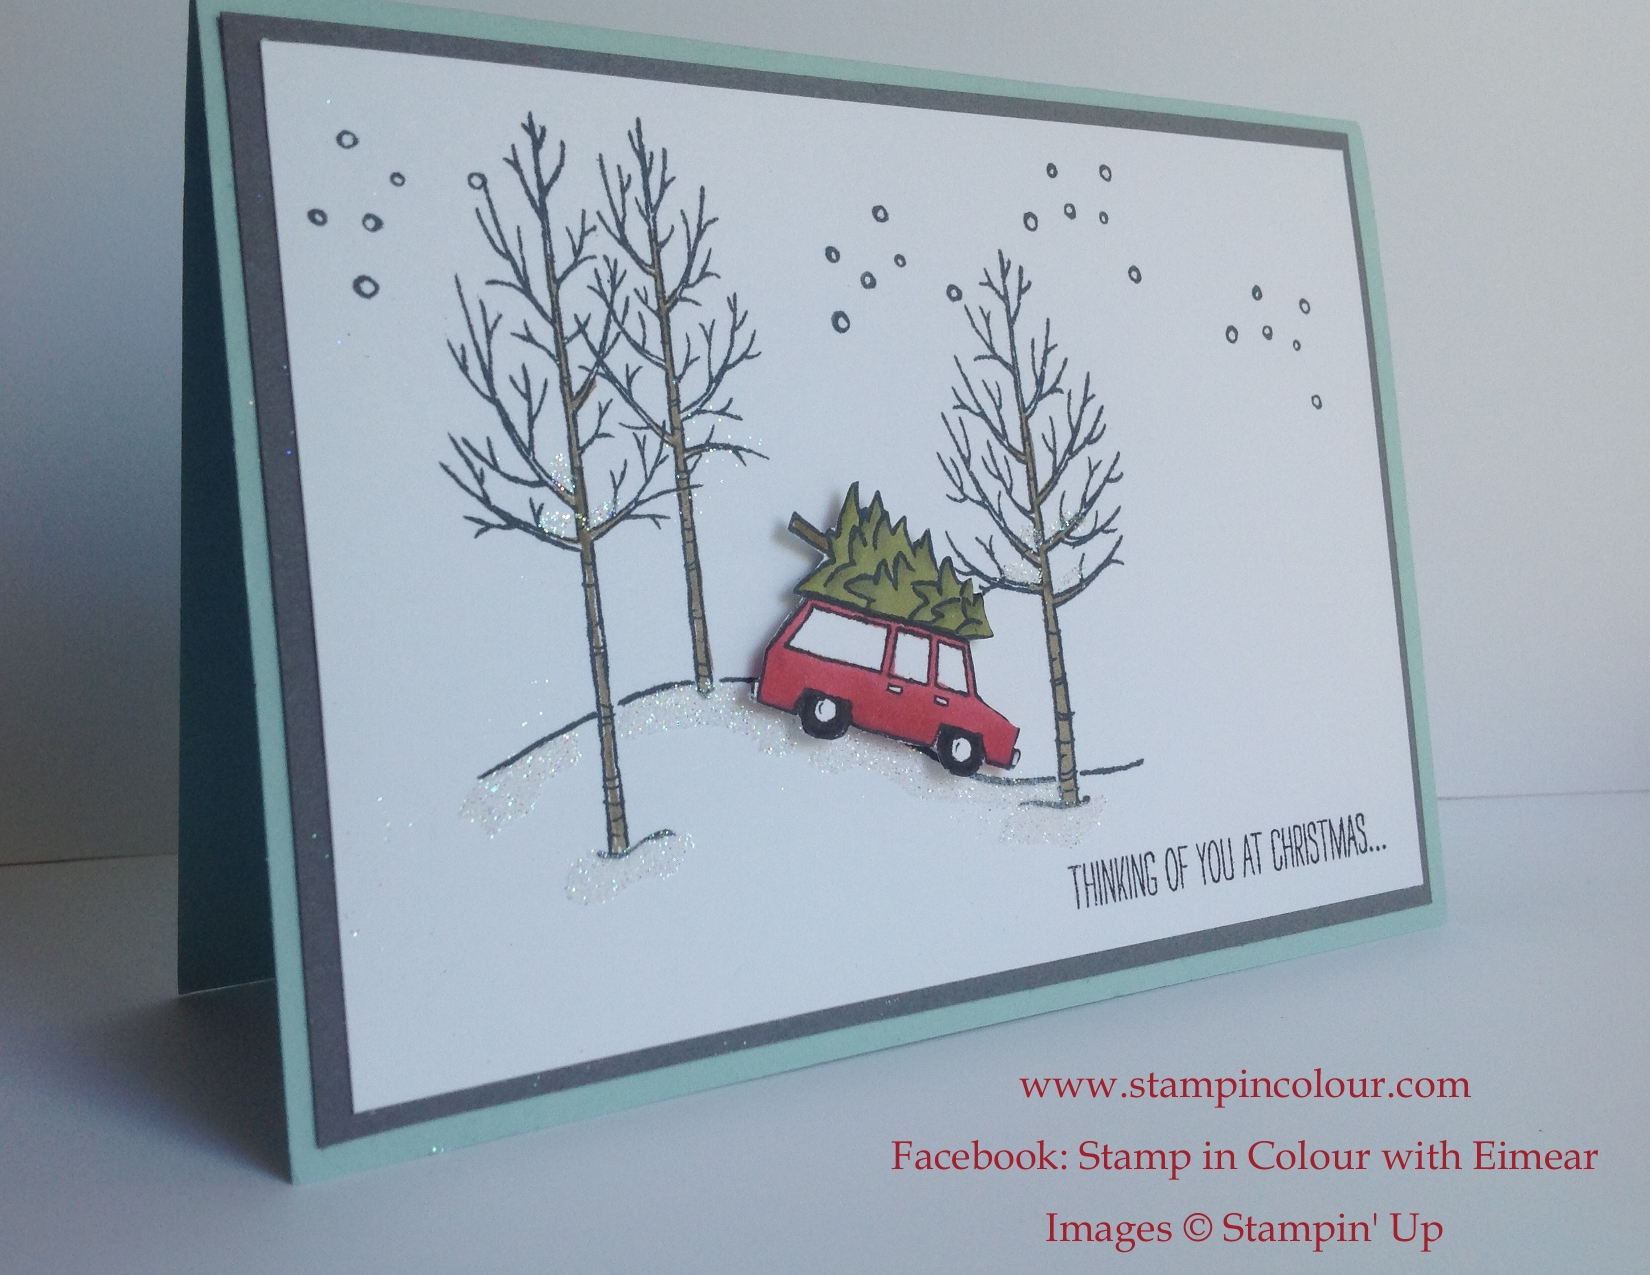 Christmas Card Ideas and Inspiration using Stampin Up products |